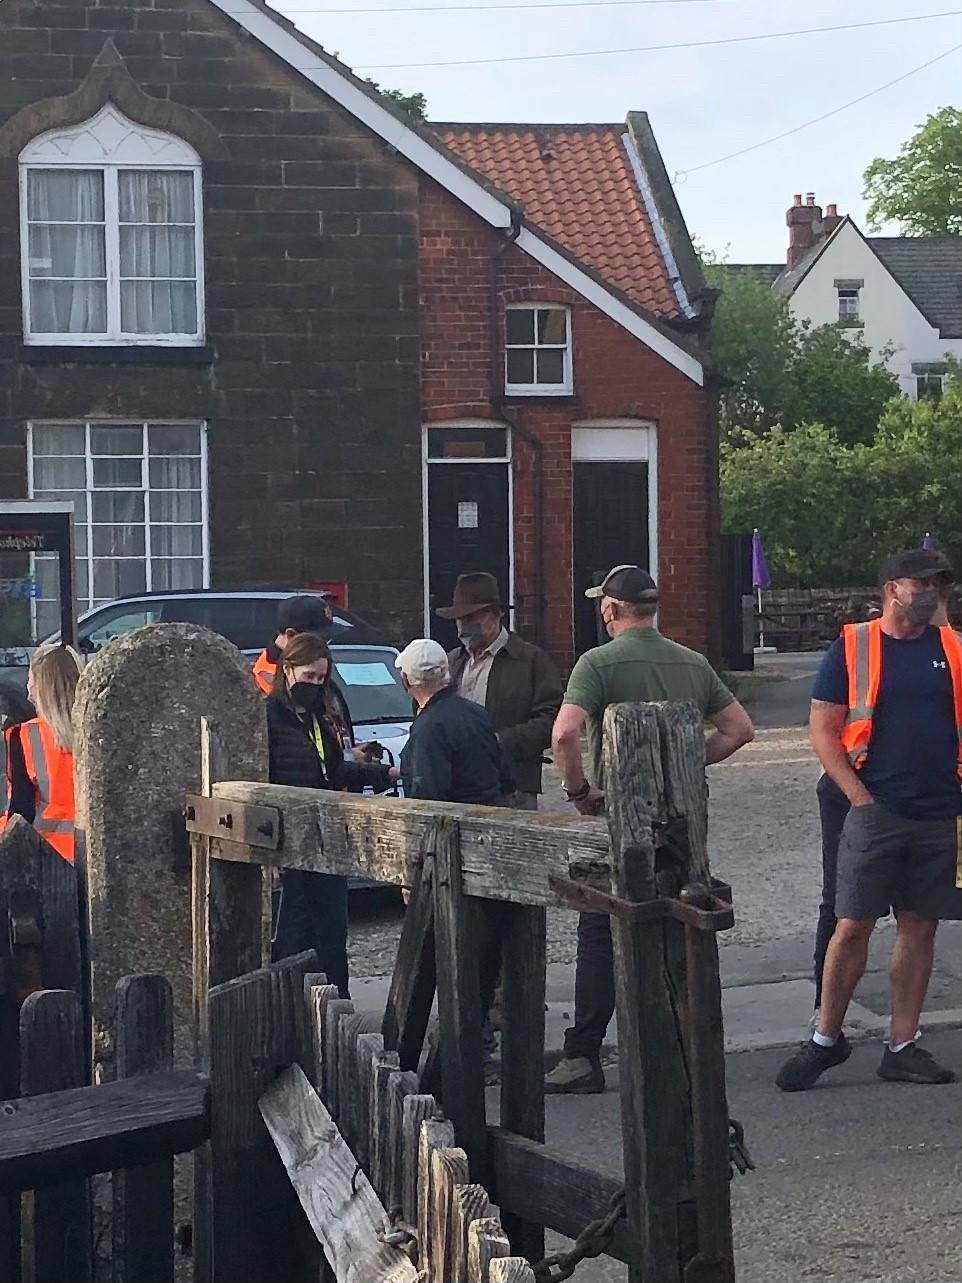 Harrison Ford was spotted filming in North Yorkshire (North Yorkshire County Council/PA)